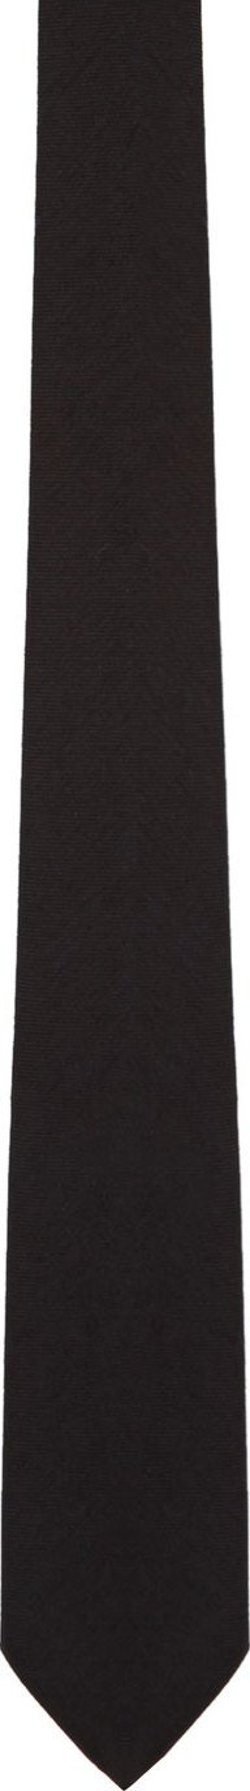 Givenchy  - Black Monogram Tie